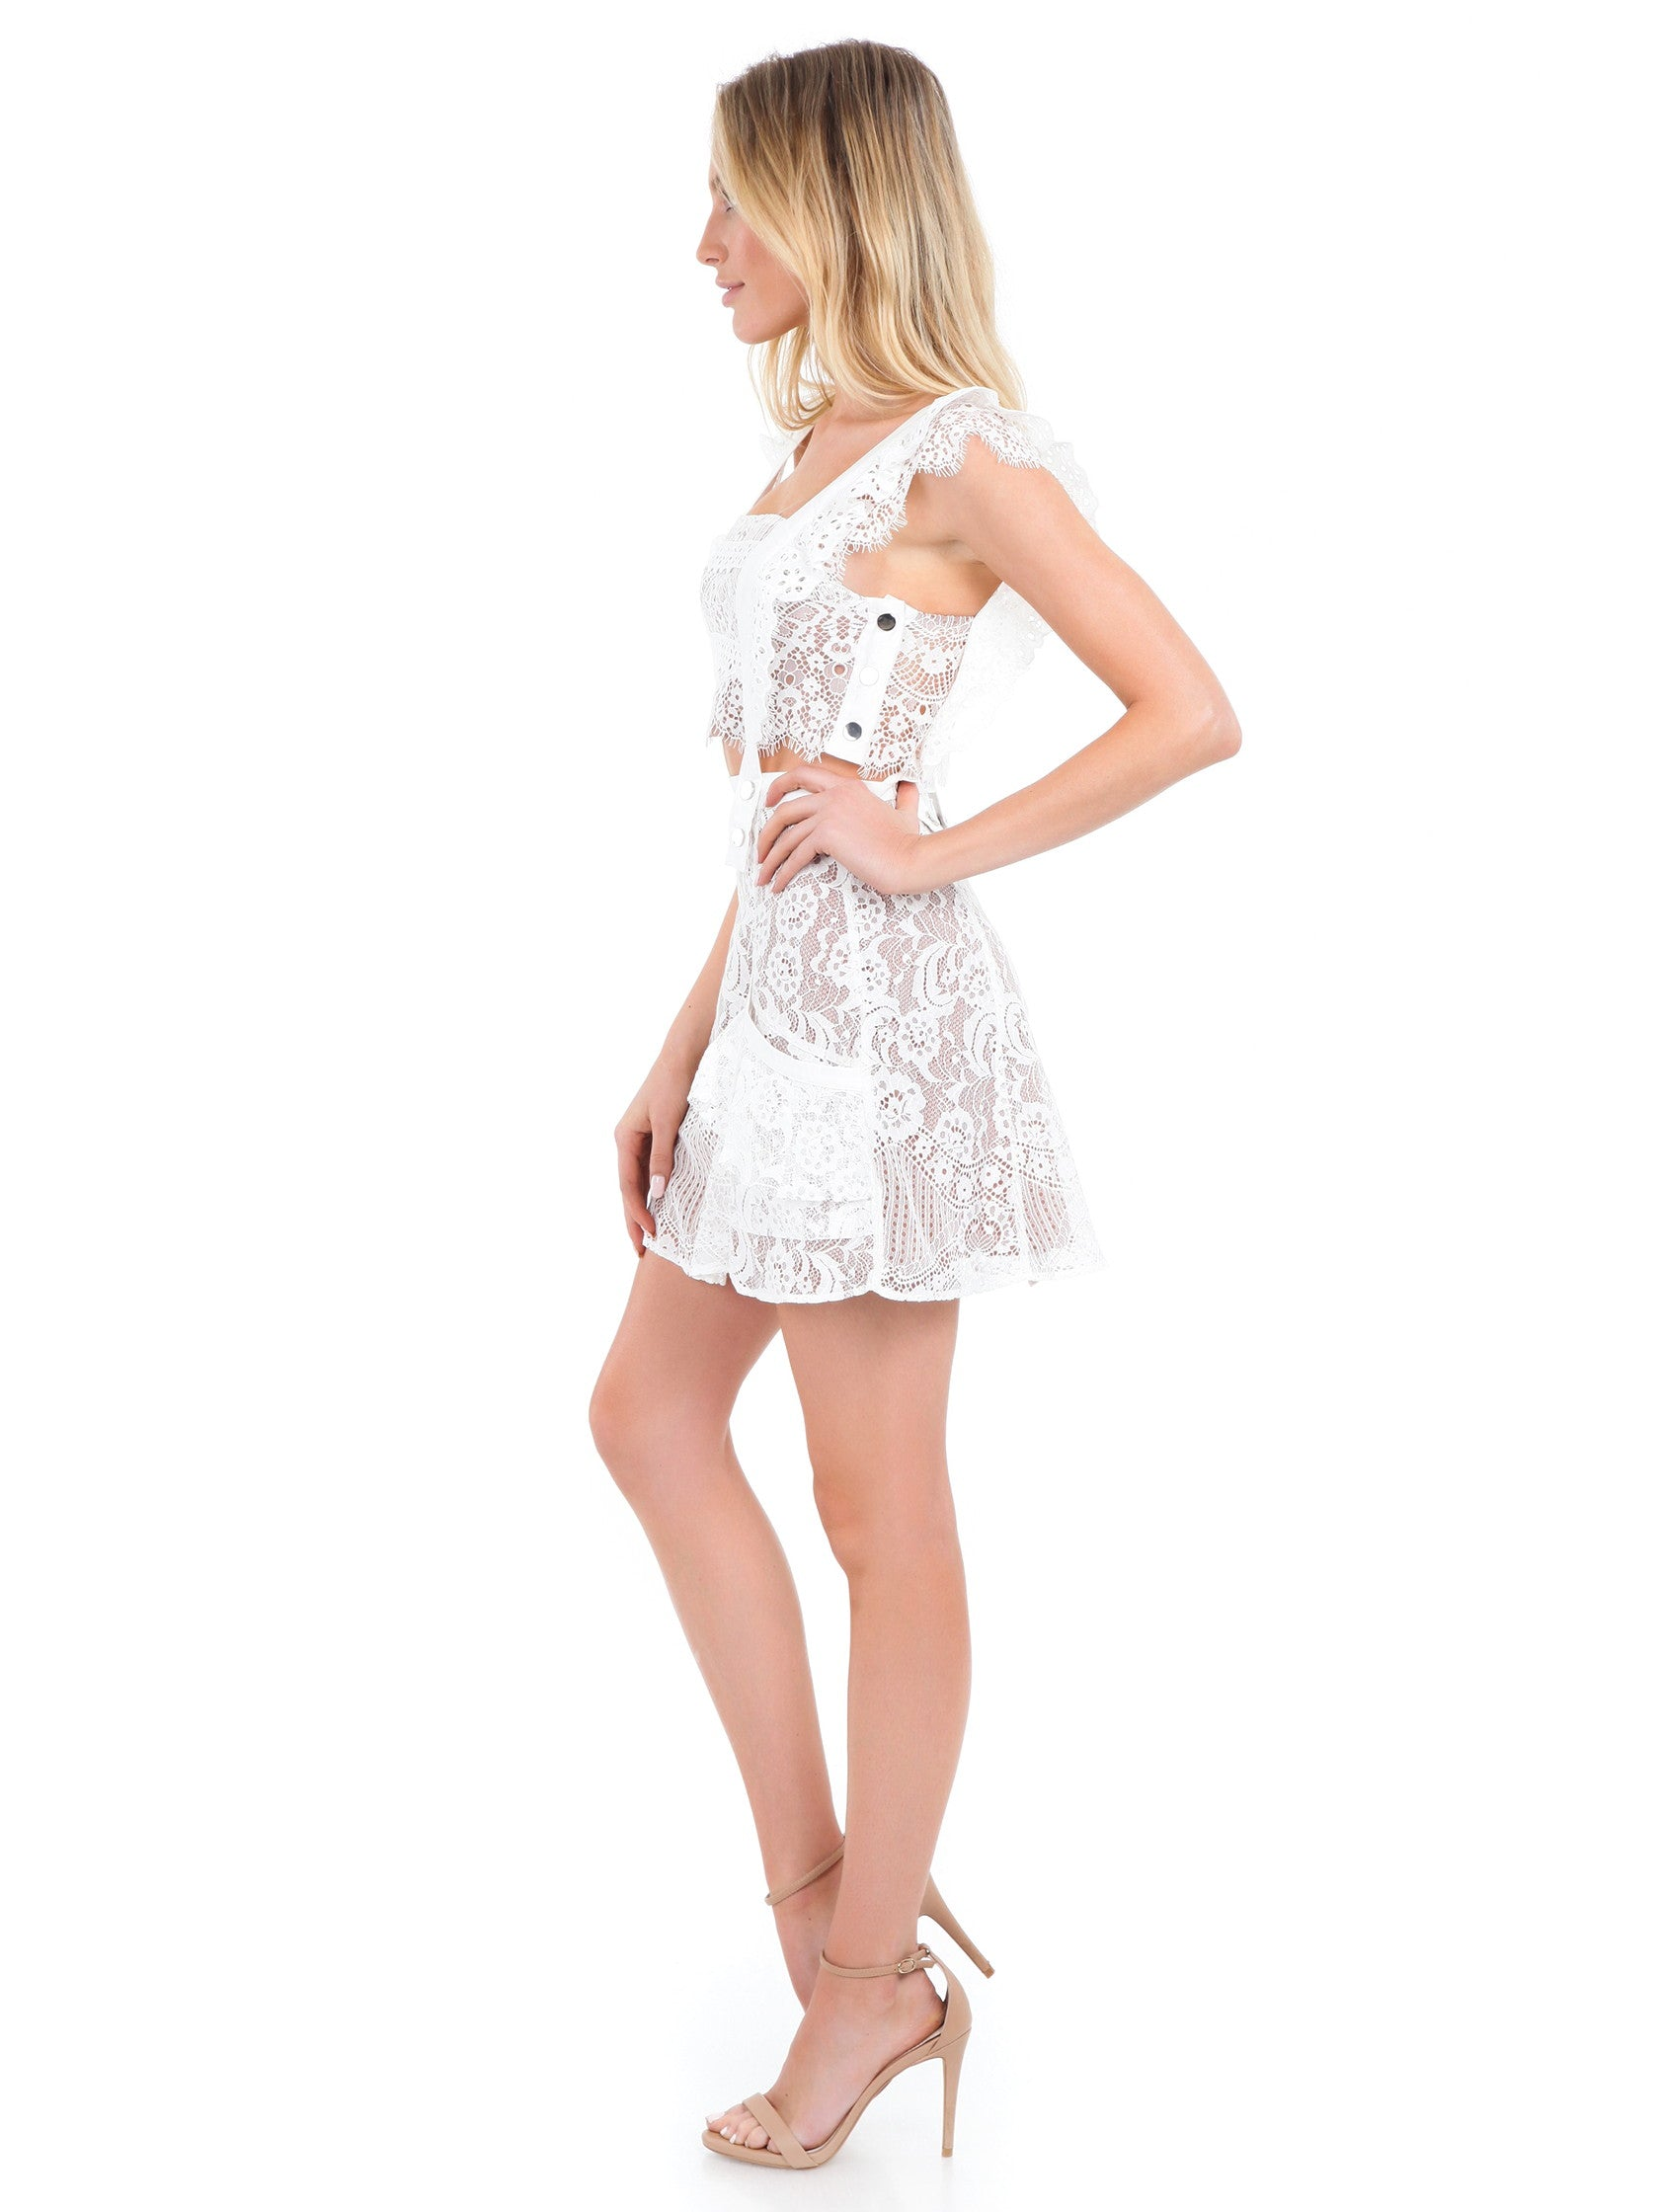 Women outfit in a dress rental from For Love & Lemons called Tati Pinafore Lace Dress